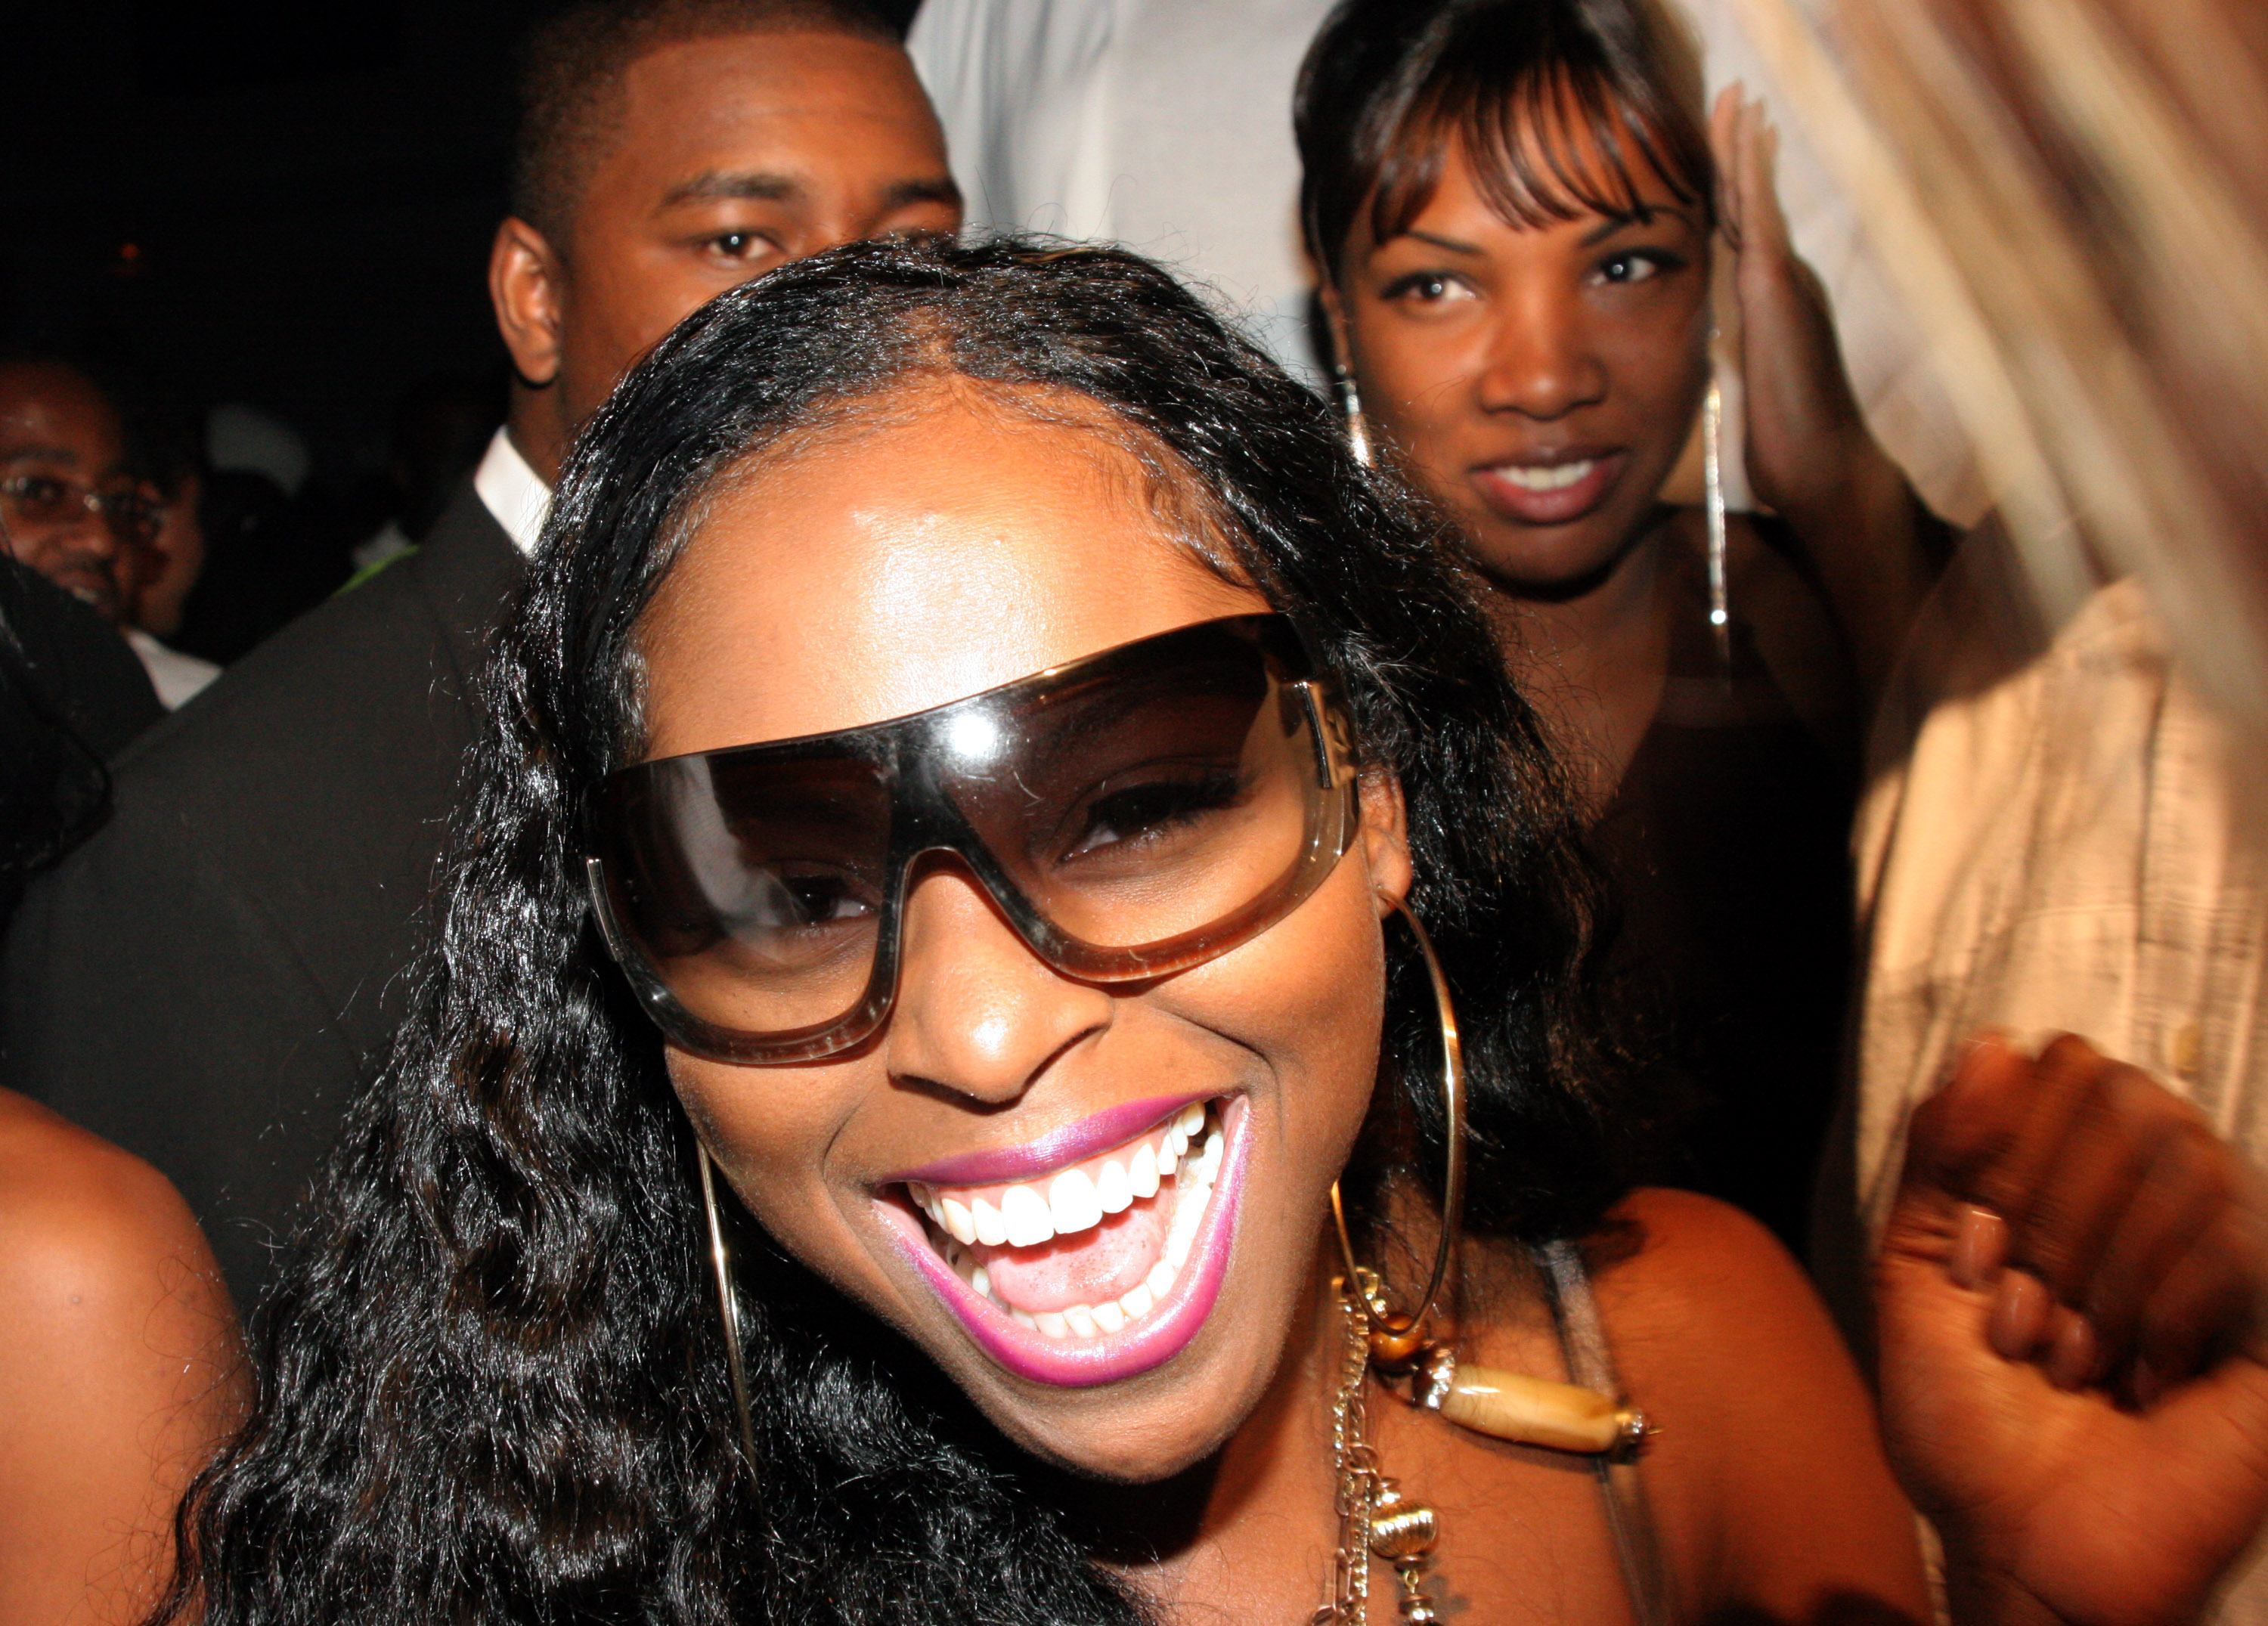 Foxy brown official sex tapes